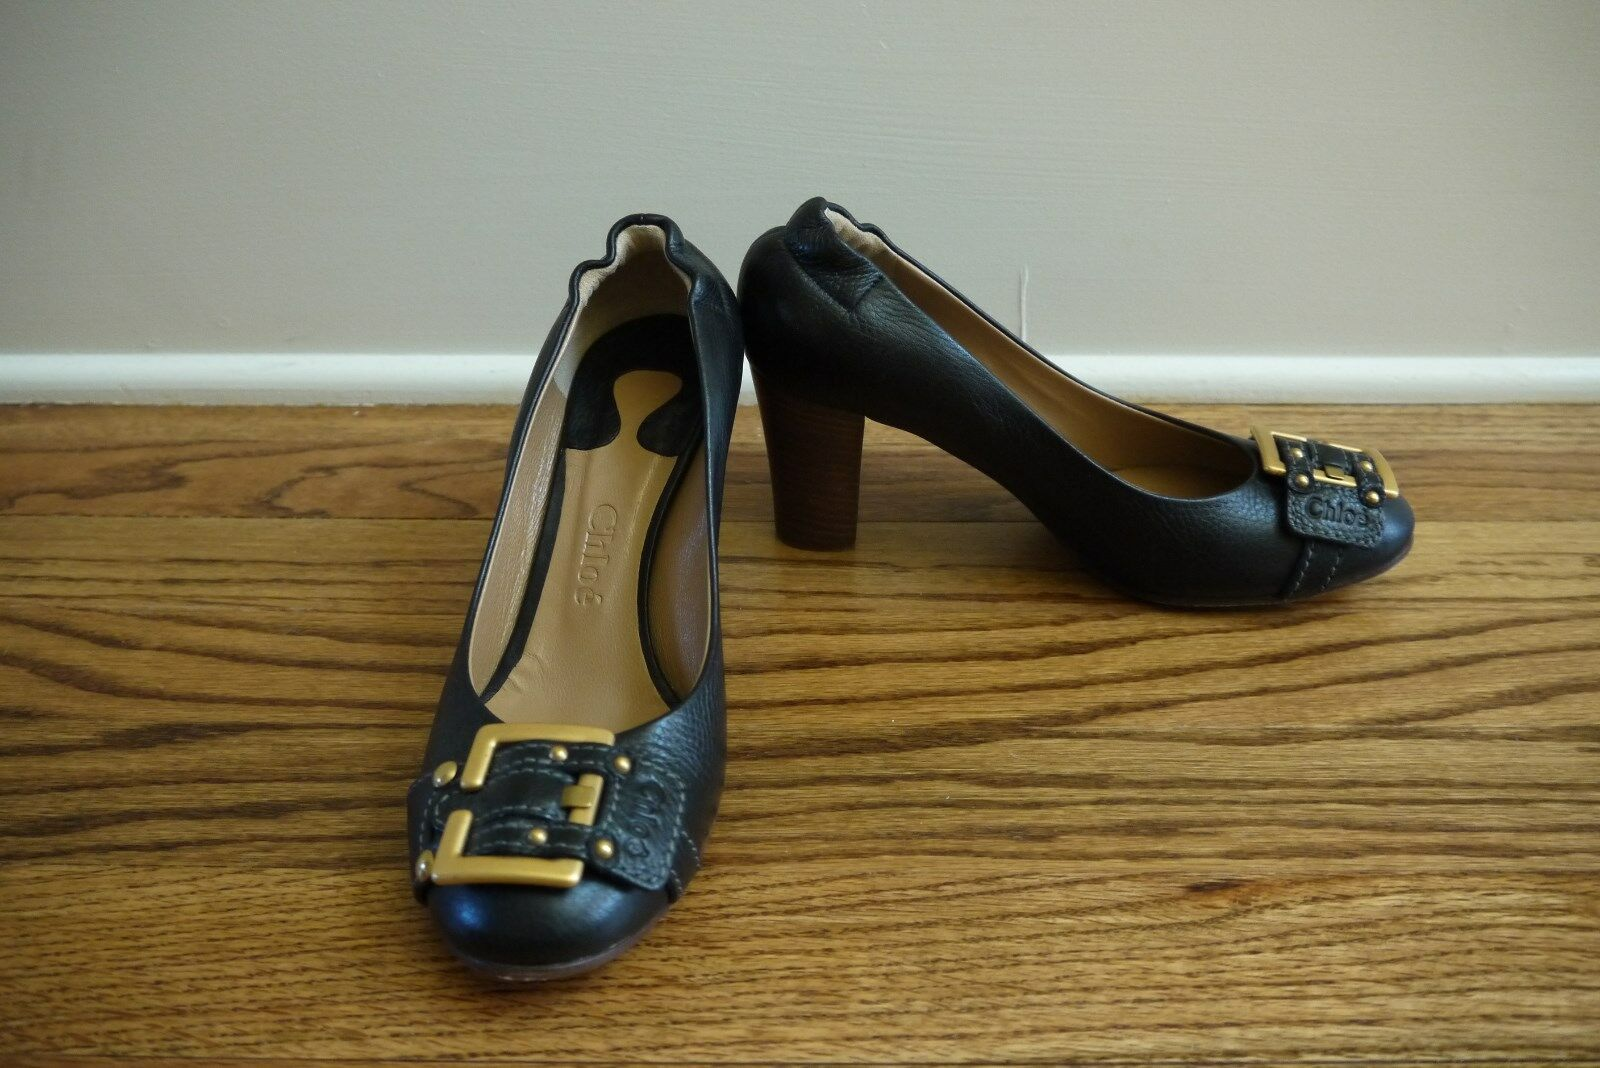 Chloe Pumps High Heels shoes Black Leather gold Buckle  Sz 36.5